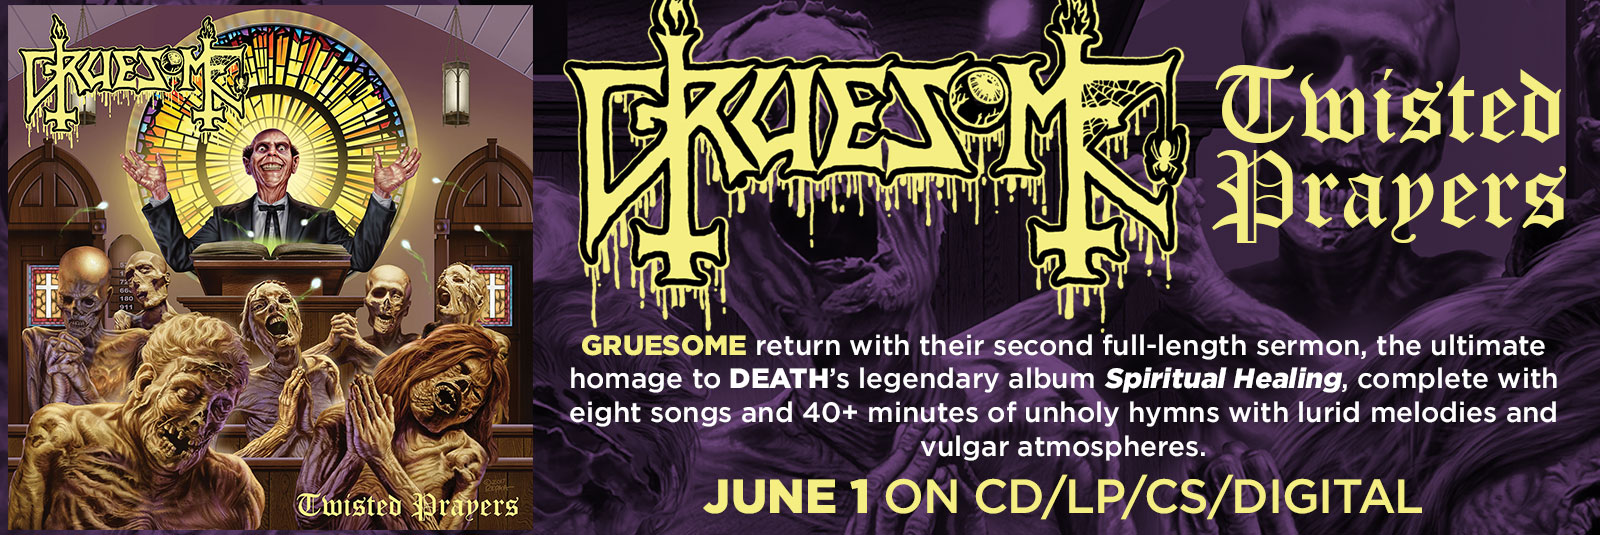 gruesome-twisted-prayers